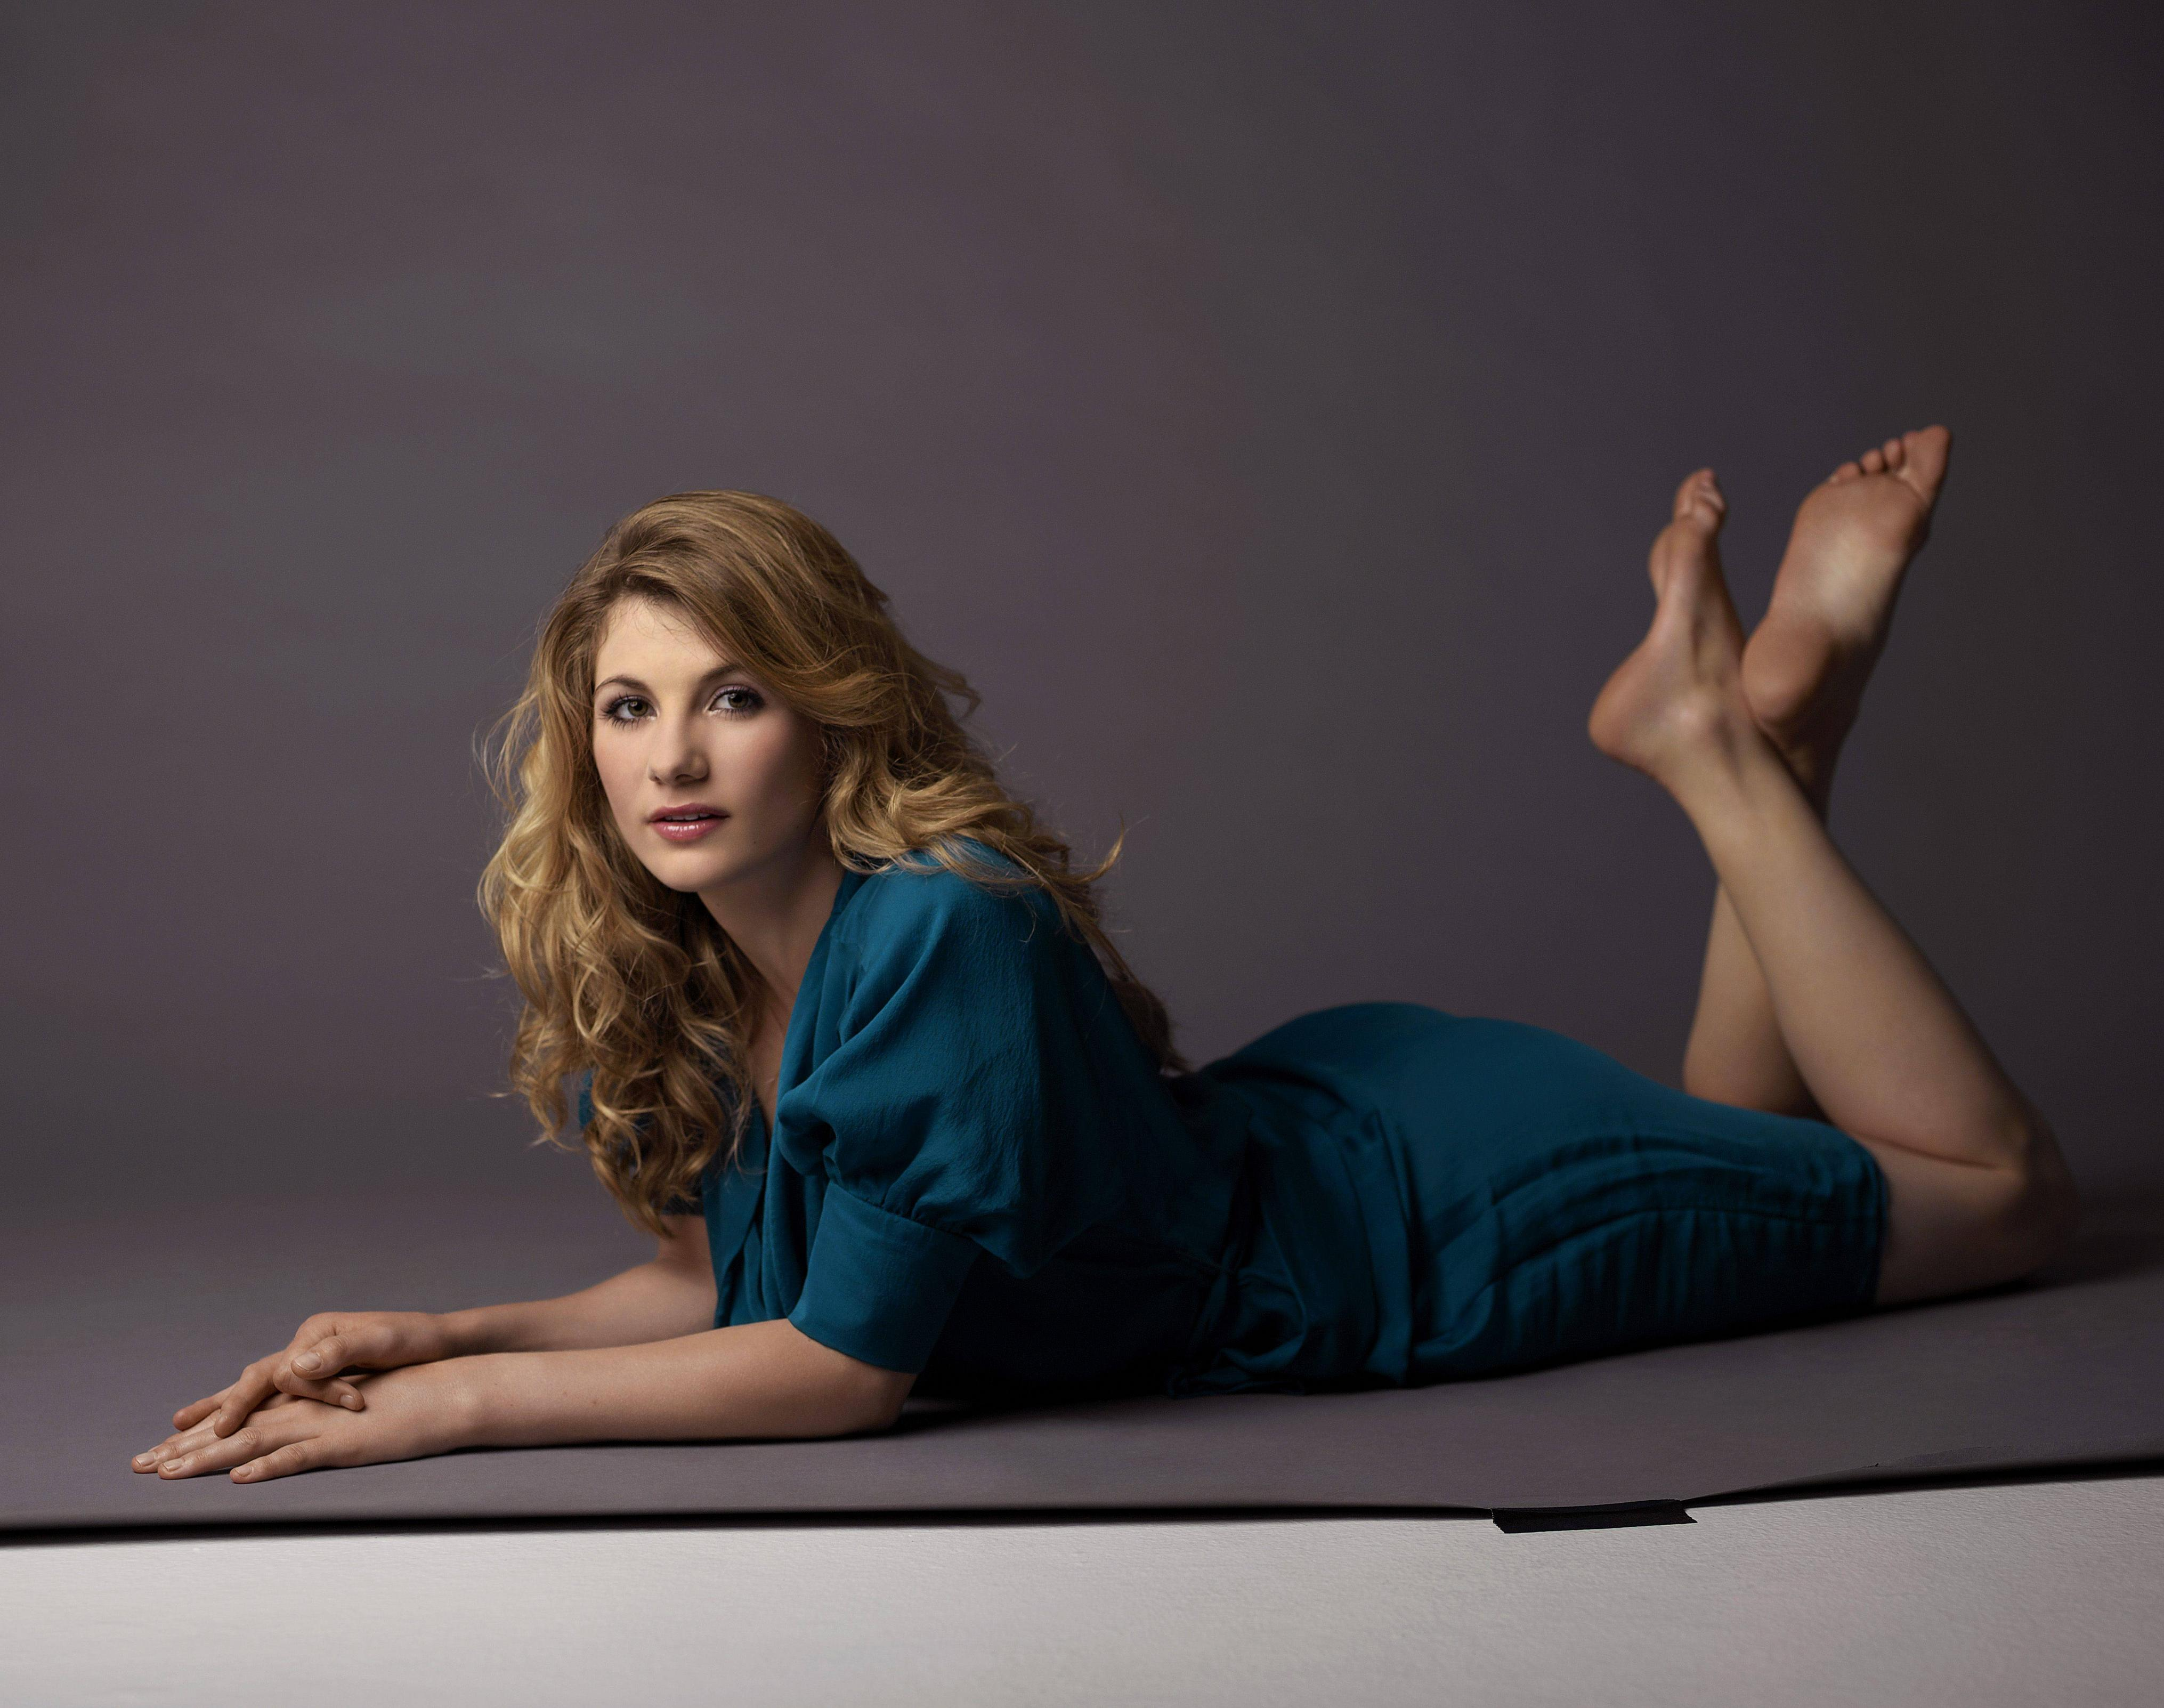 Celebrites Jodie Whittaker nude (47 images), Tits